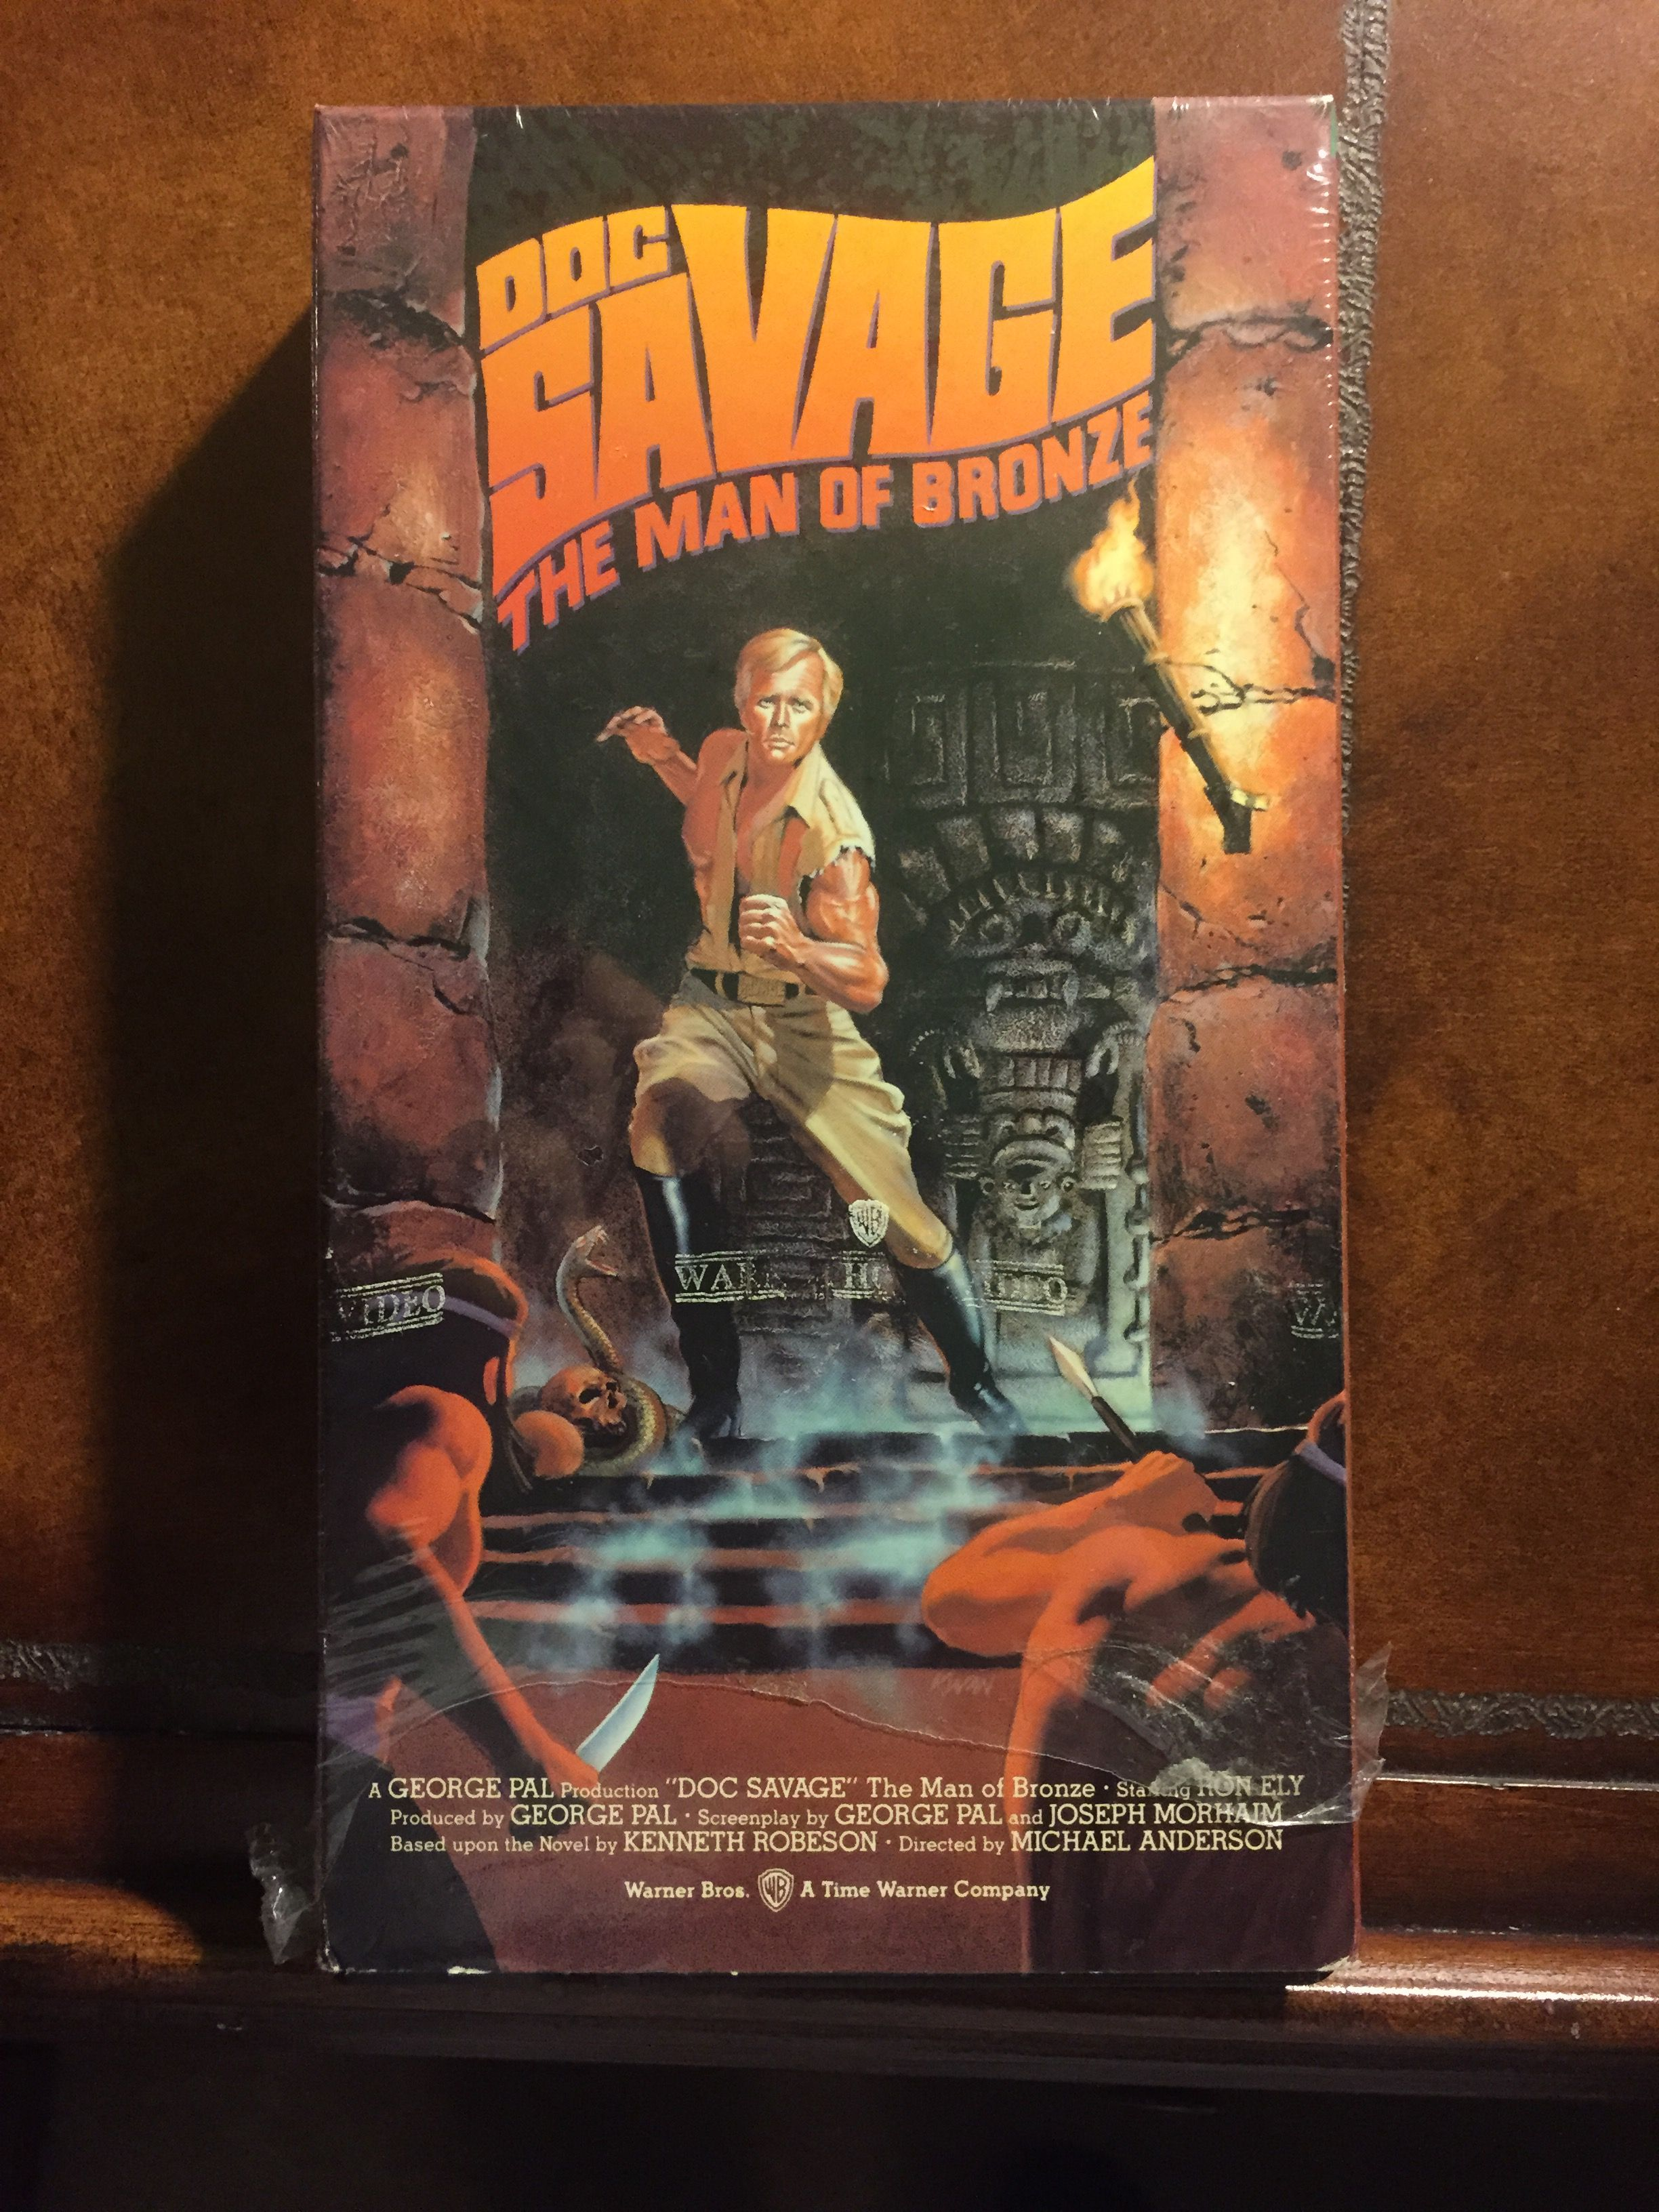 Doc Savage, The Man of Bronze, VHS